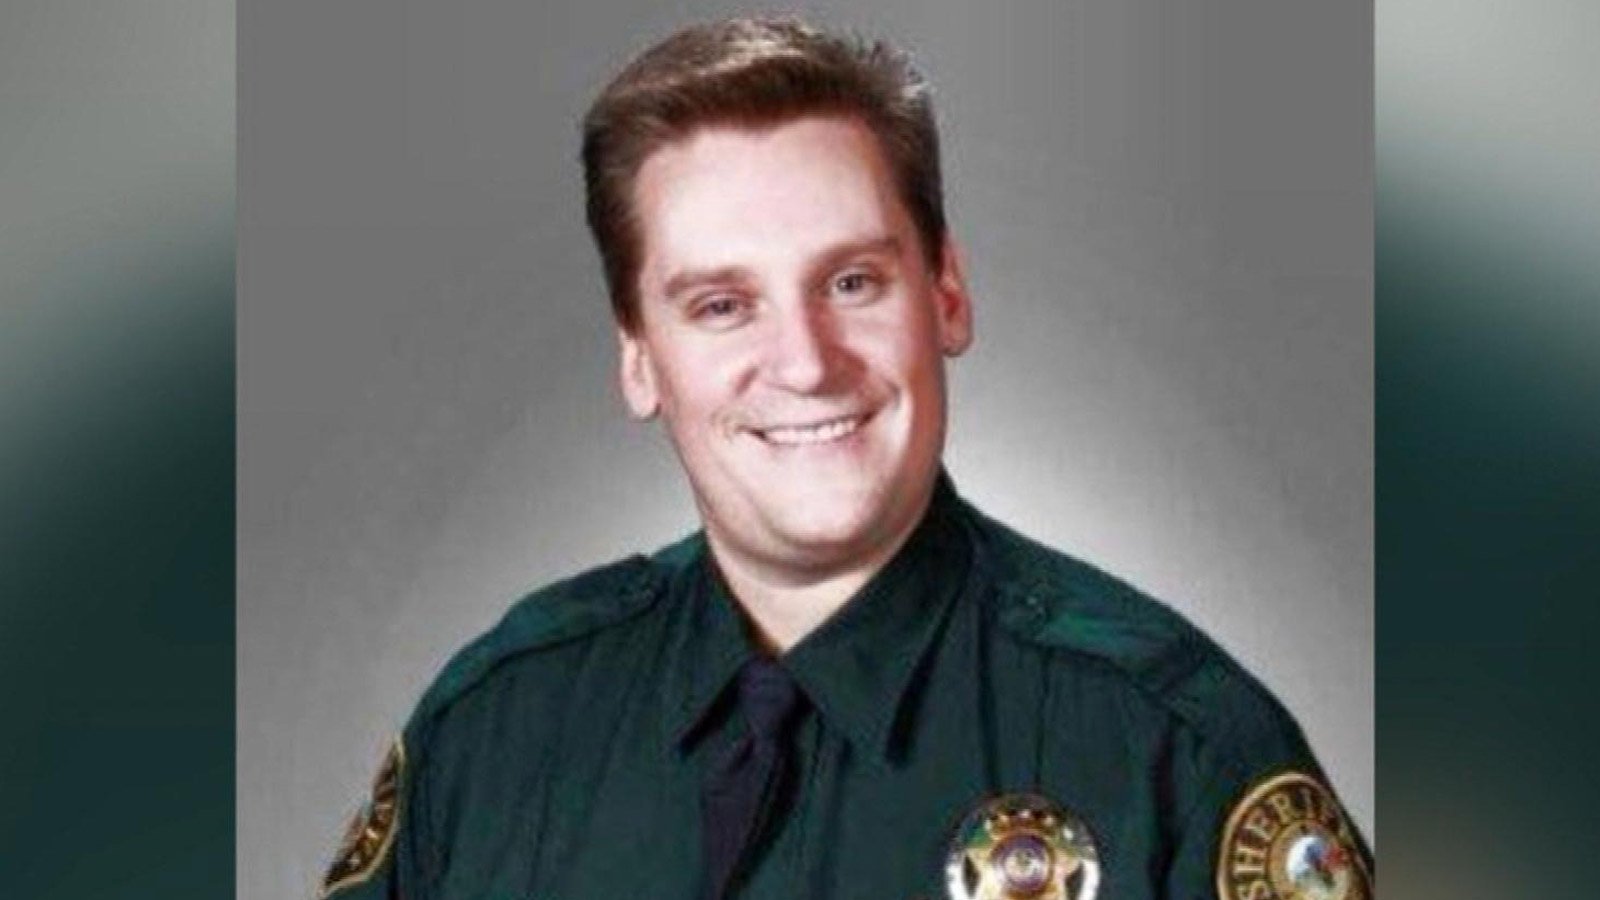 Sgt. Sean Renfro (credit Jefferson County Sheriff's Office)